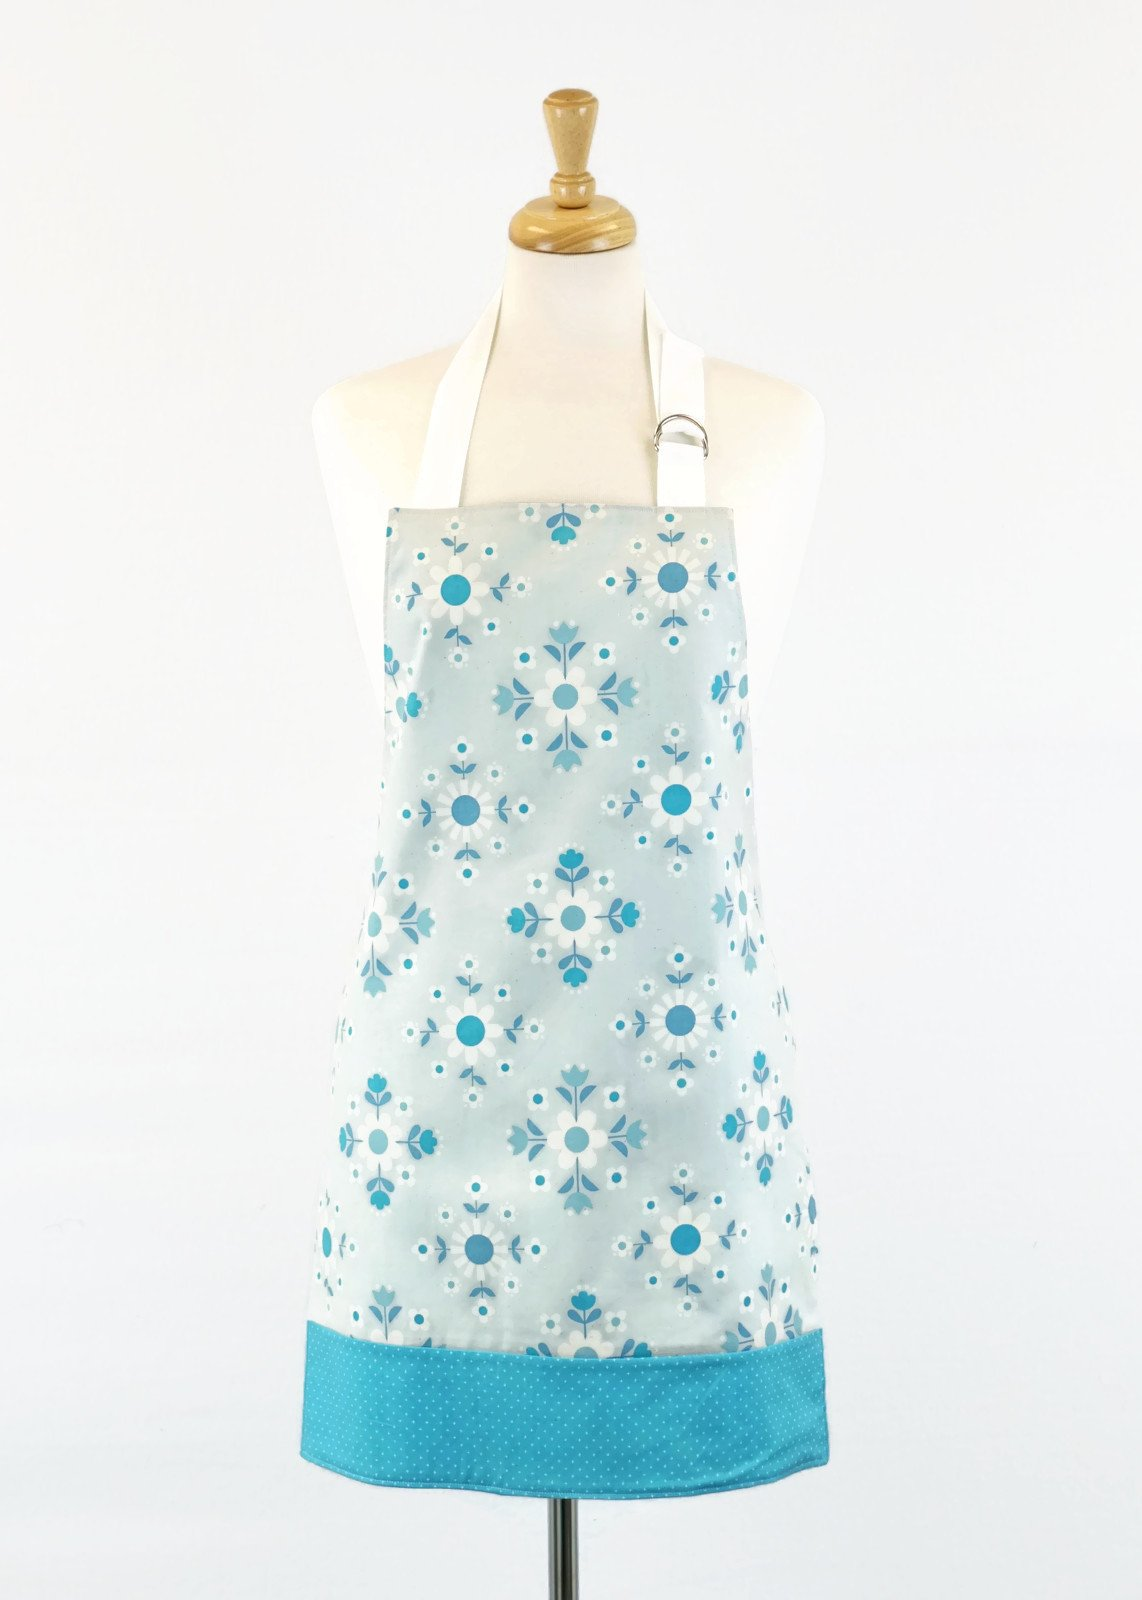 Women's Apron - Gray and Blue Retro Floral